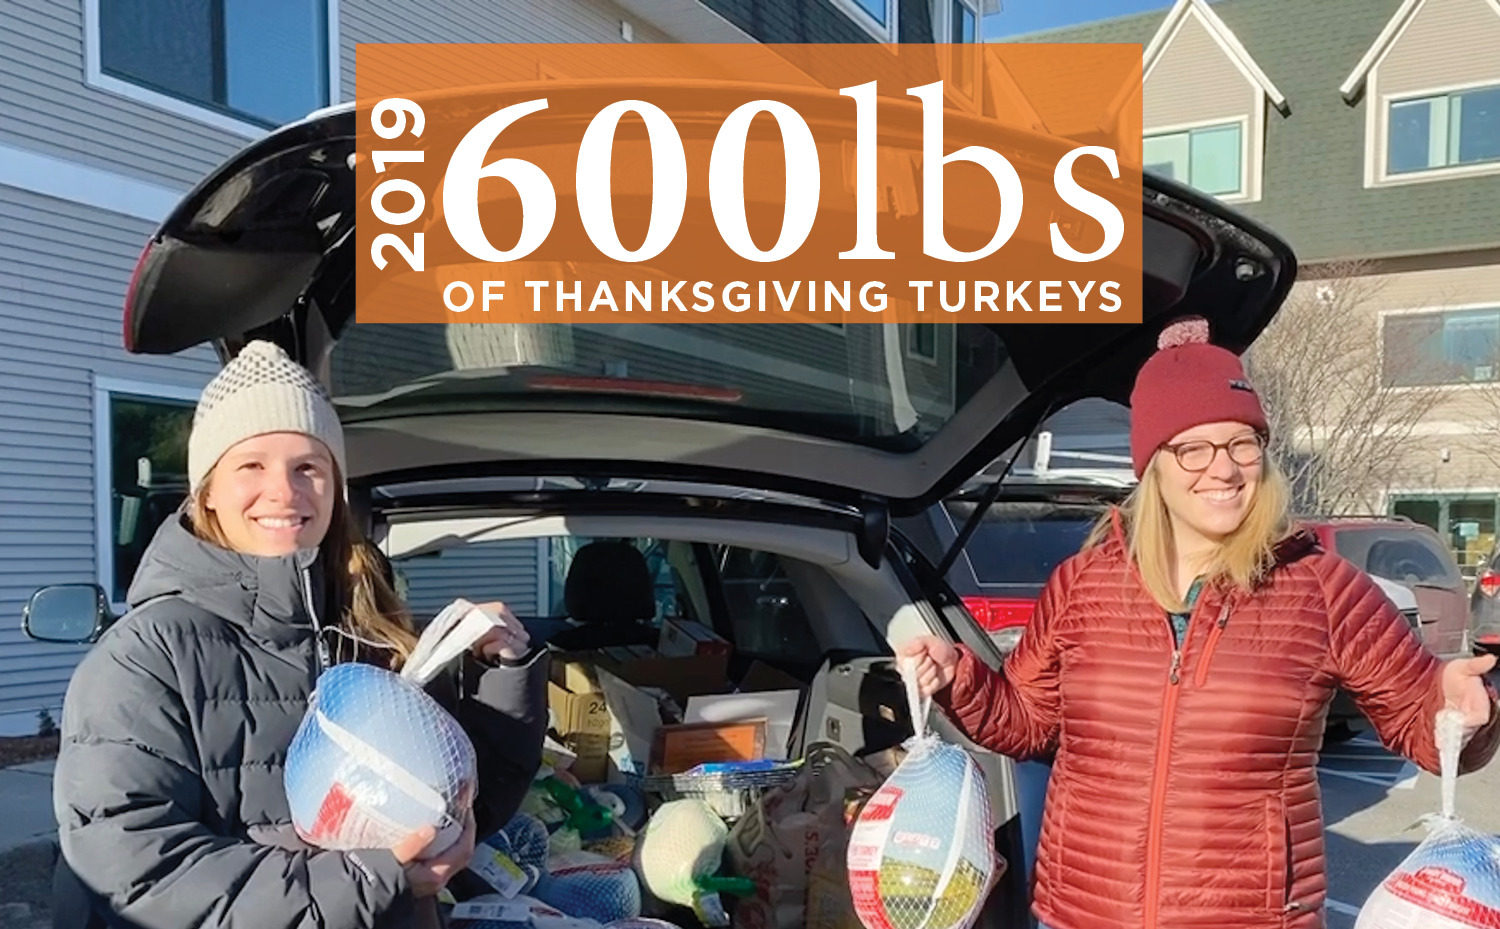 Two smiling women from the E4H Vermont team loading a car and holding turkeys to donate to the local food bank